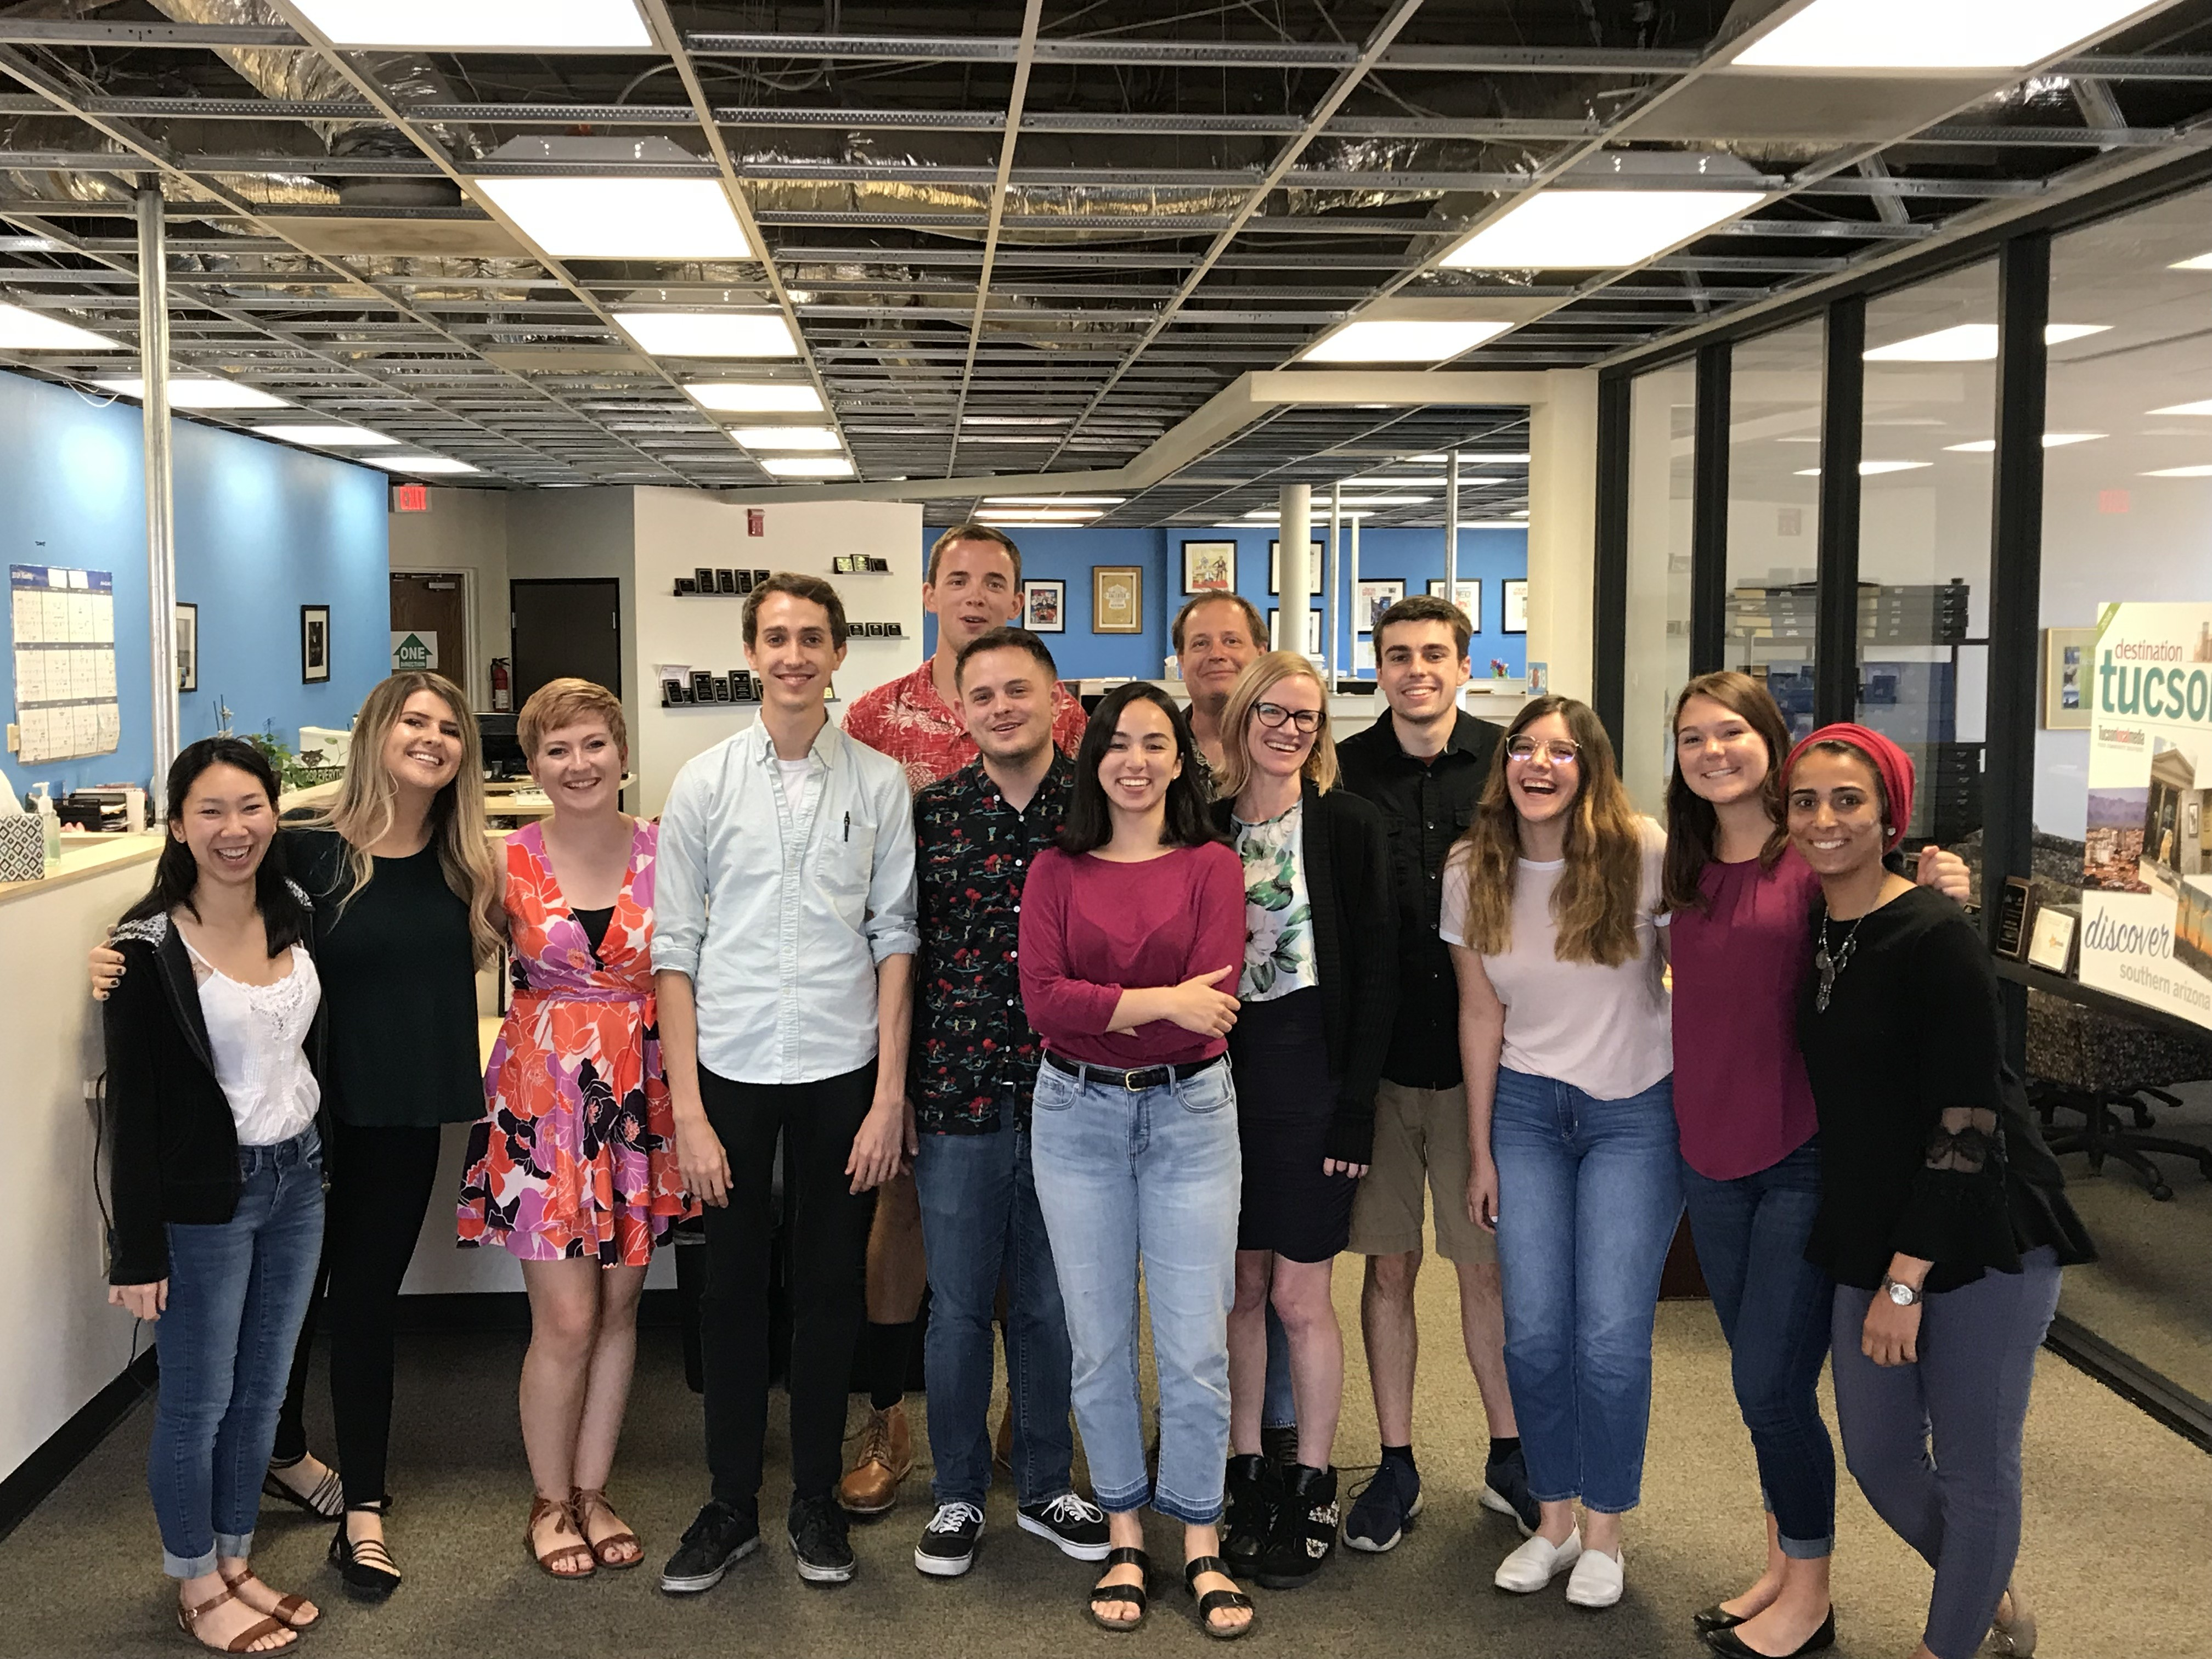 adios interns the range the tucson weekly s daily dispatch